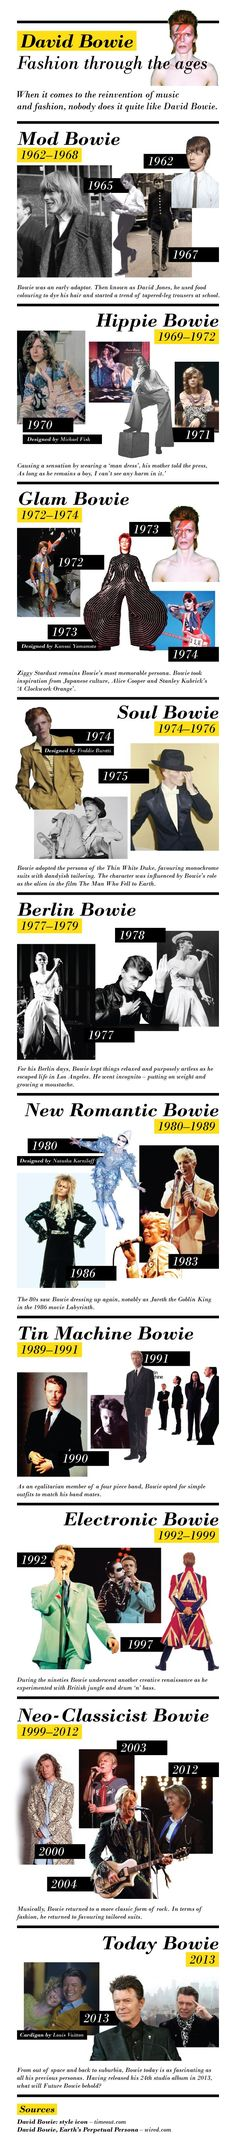 #Fashion Icon | David Bowie Style Through the Decades: From Mod & Glam to Neo Classicist. Ally.....